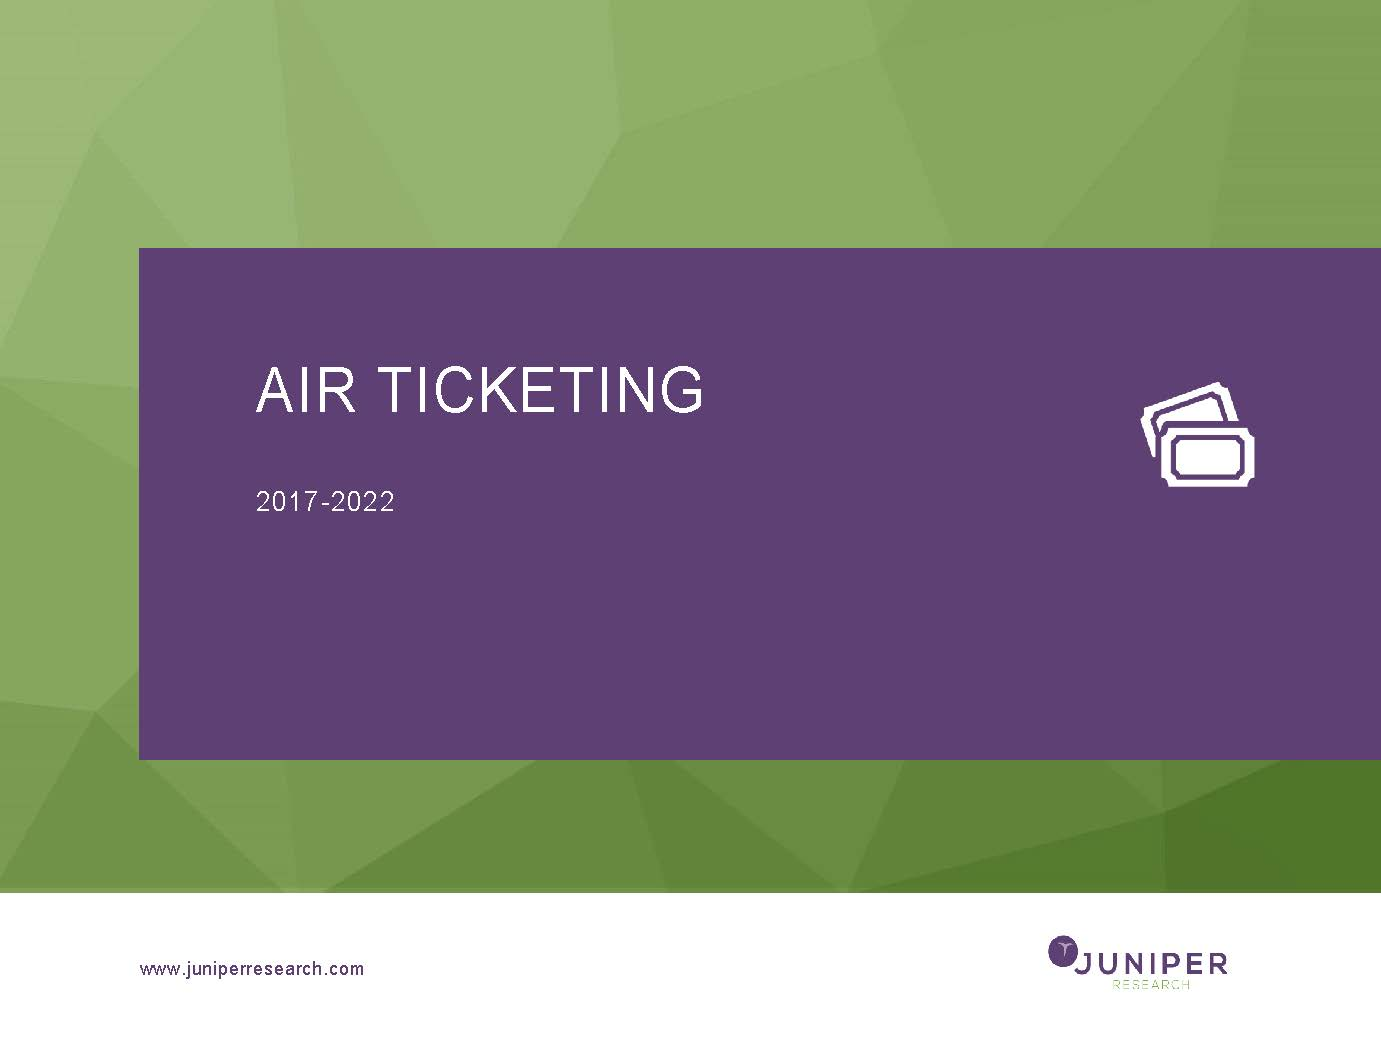 Air Ticketing 2017-2022